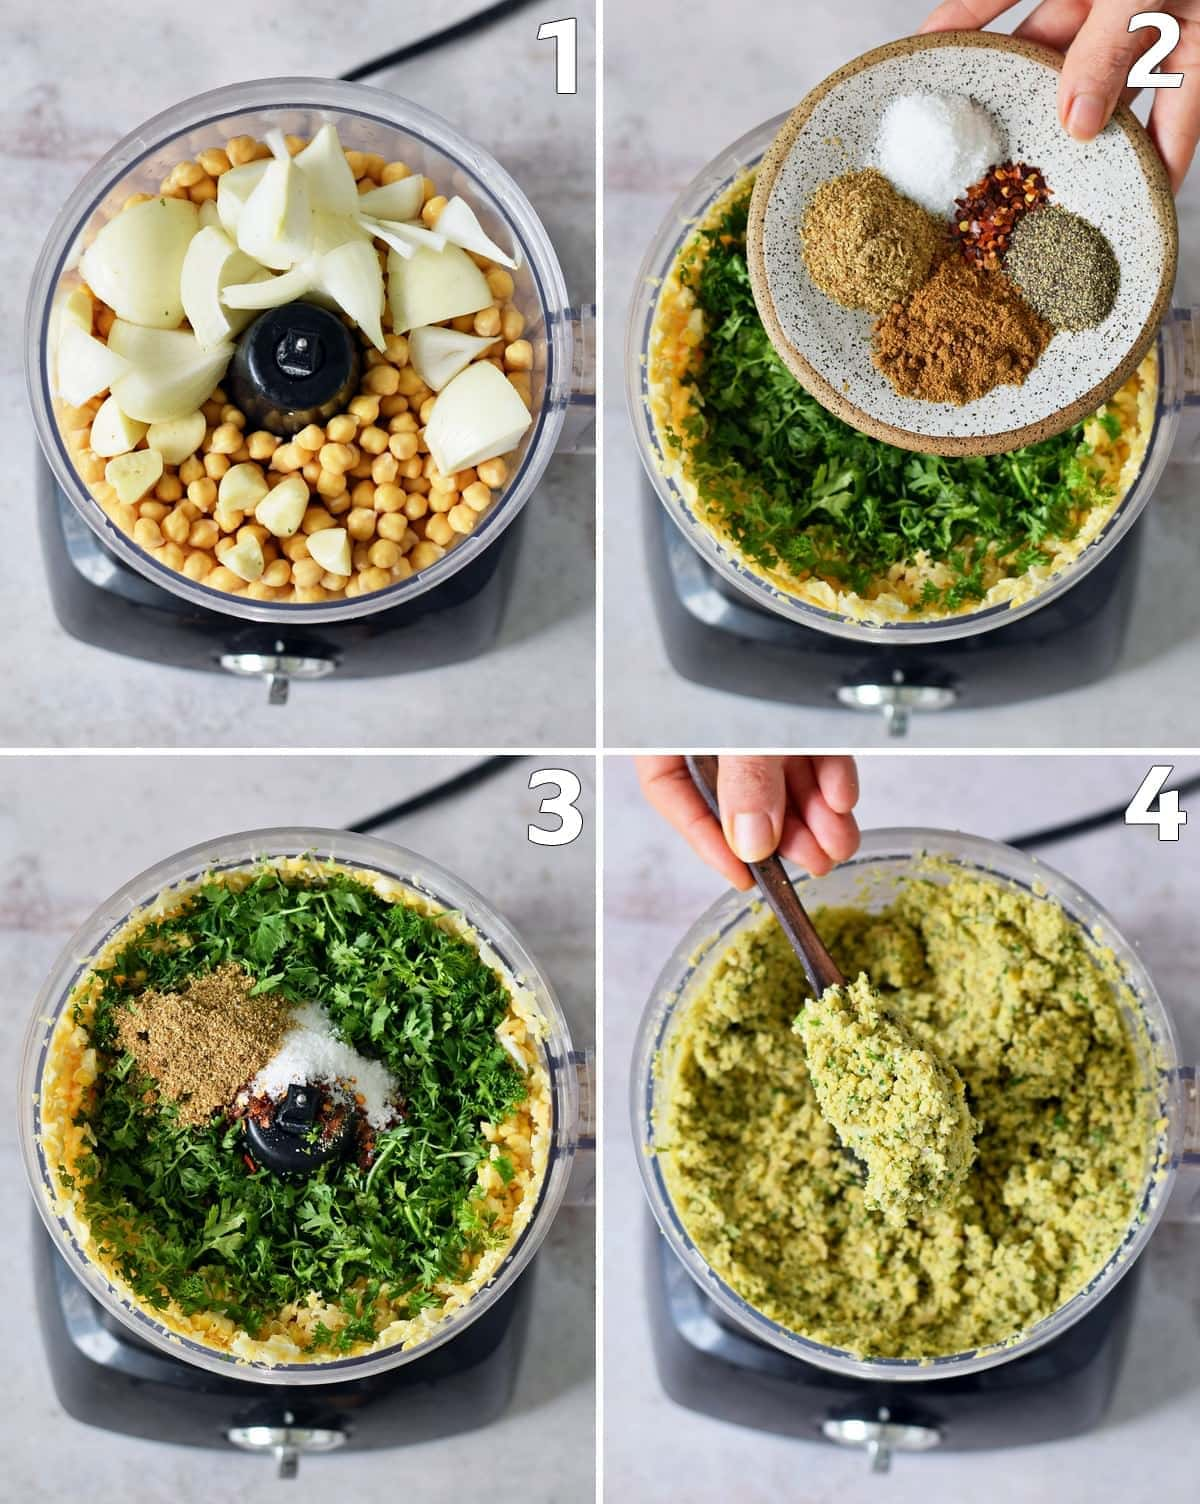 4 step-by-step photos how to make falafels in a food processor